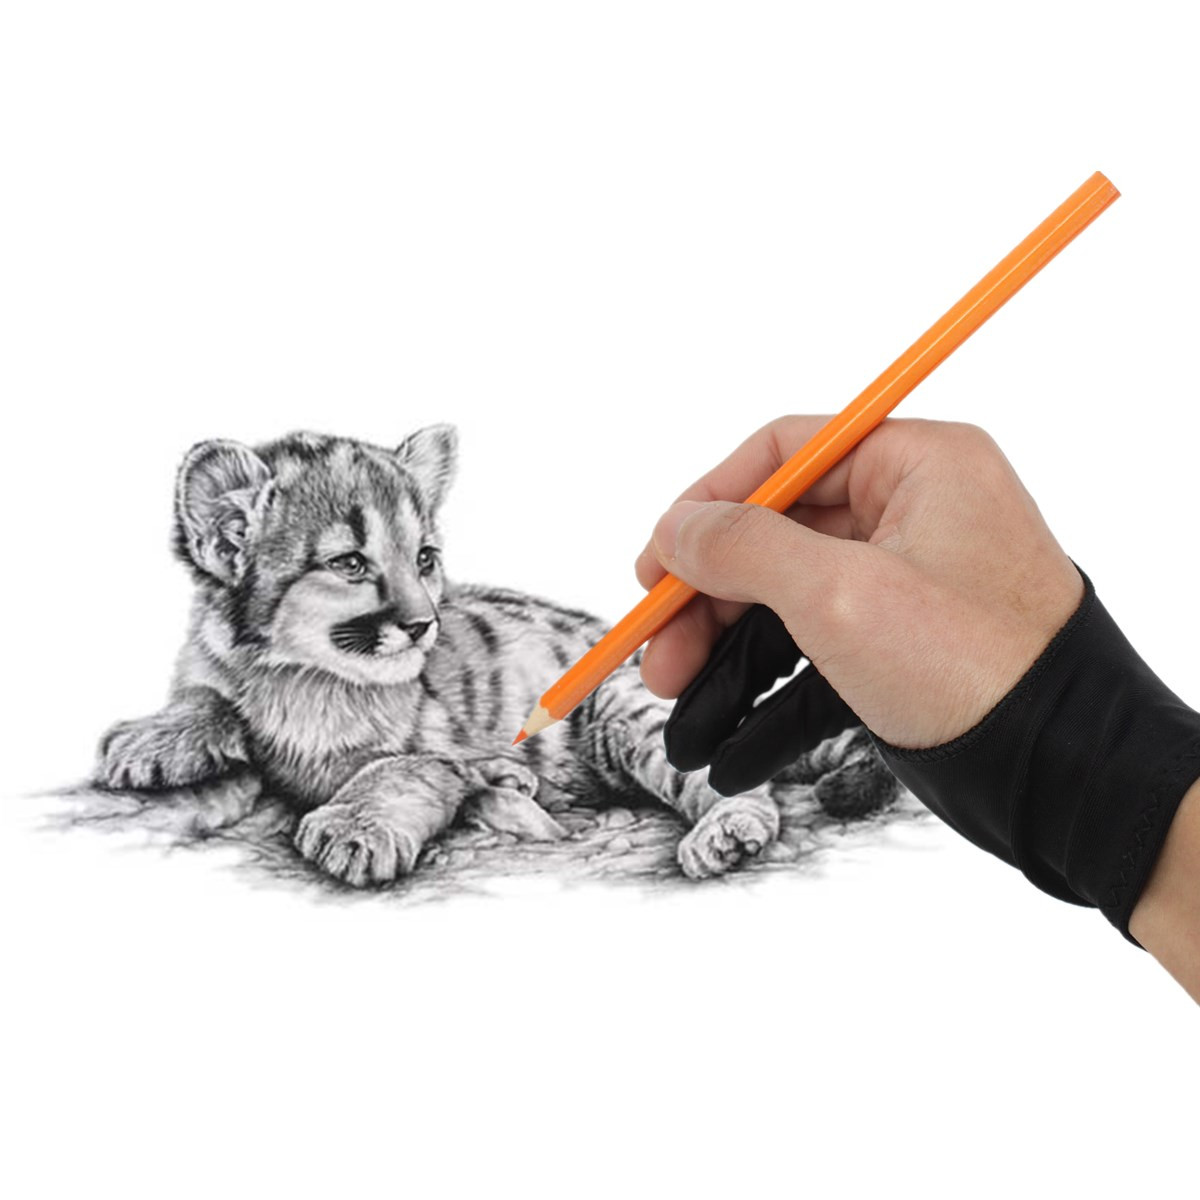 2 PCS Graphics Drawing Pen Tablet Tracing Pad Anti Fouling New Excellent Professional Design Artist Drawing Two Finger Glove